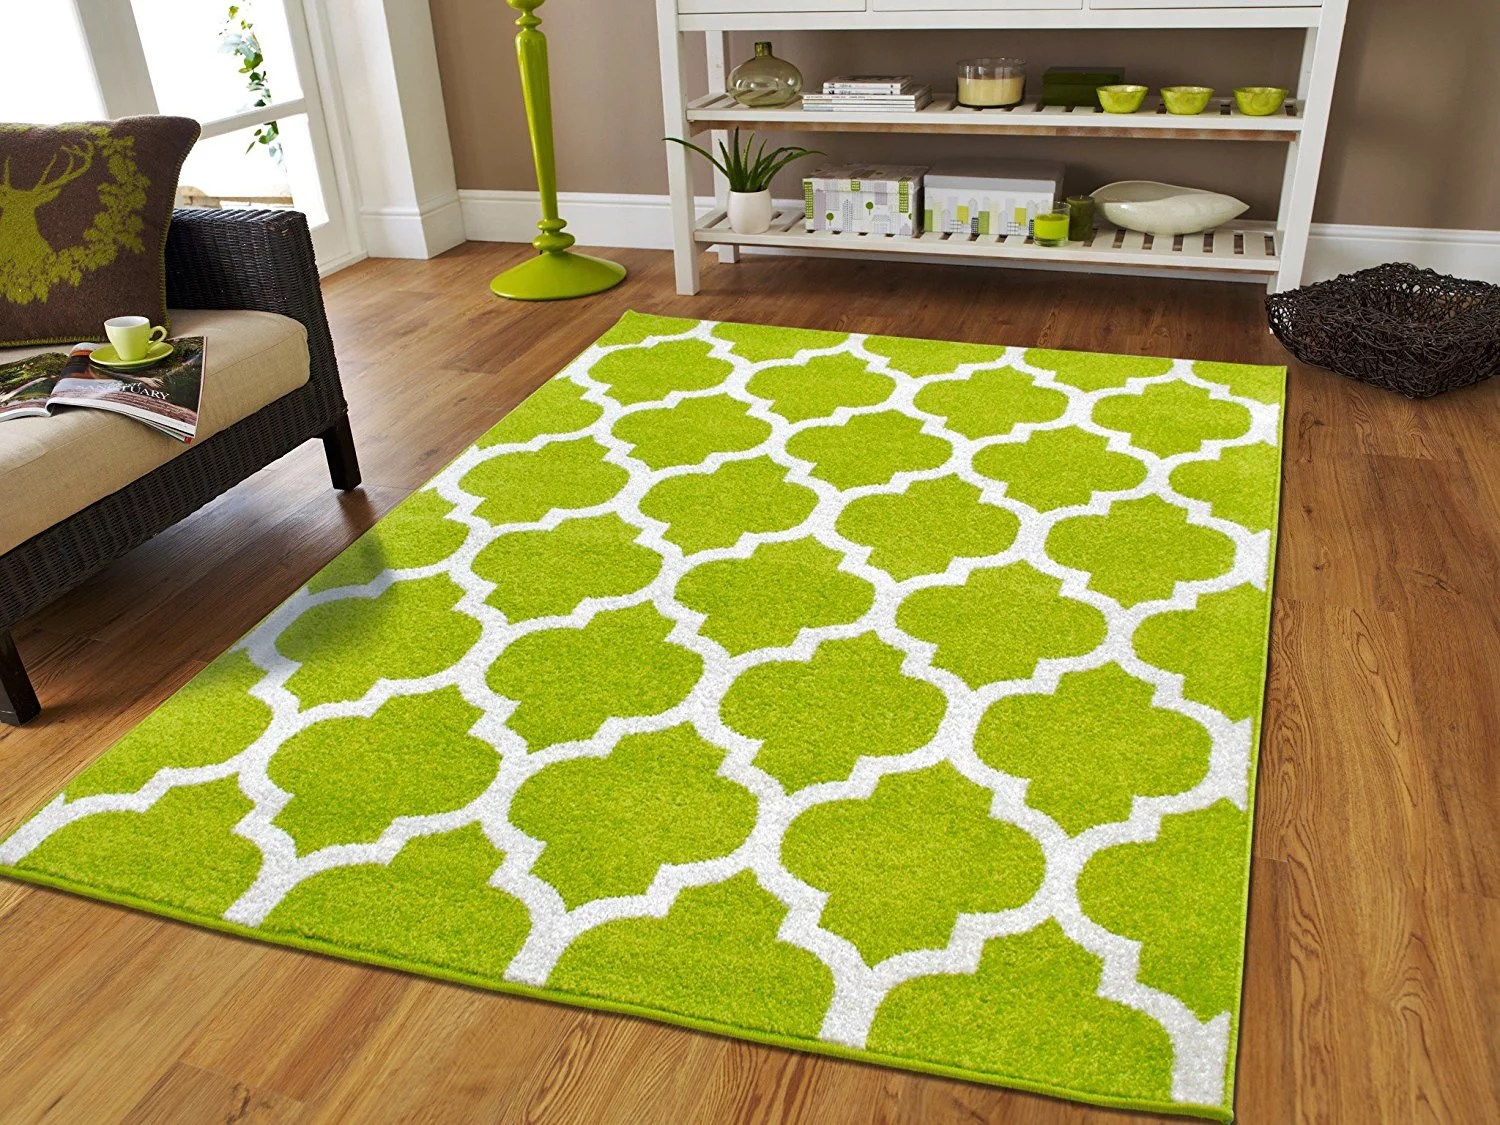 yellow area rug living room apartment rooms rugs on clearance 5x8 bedroom 5x7 persian for walmart com